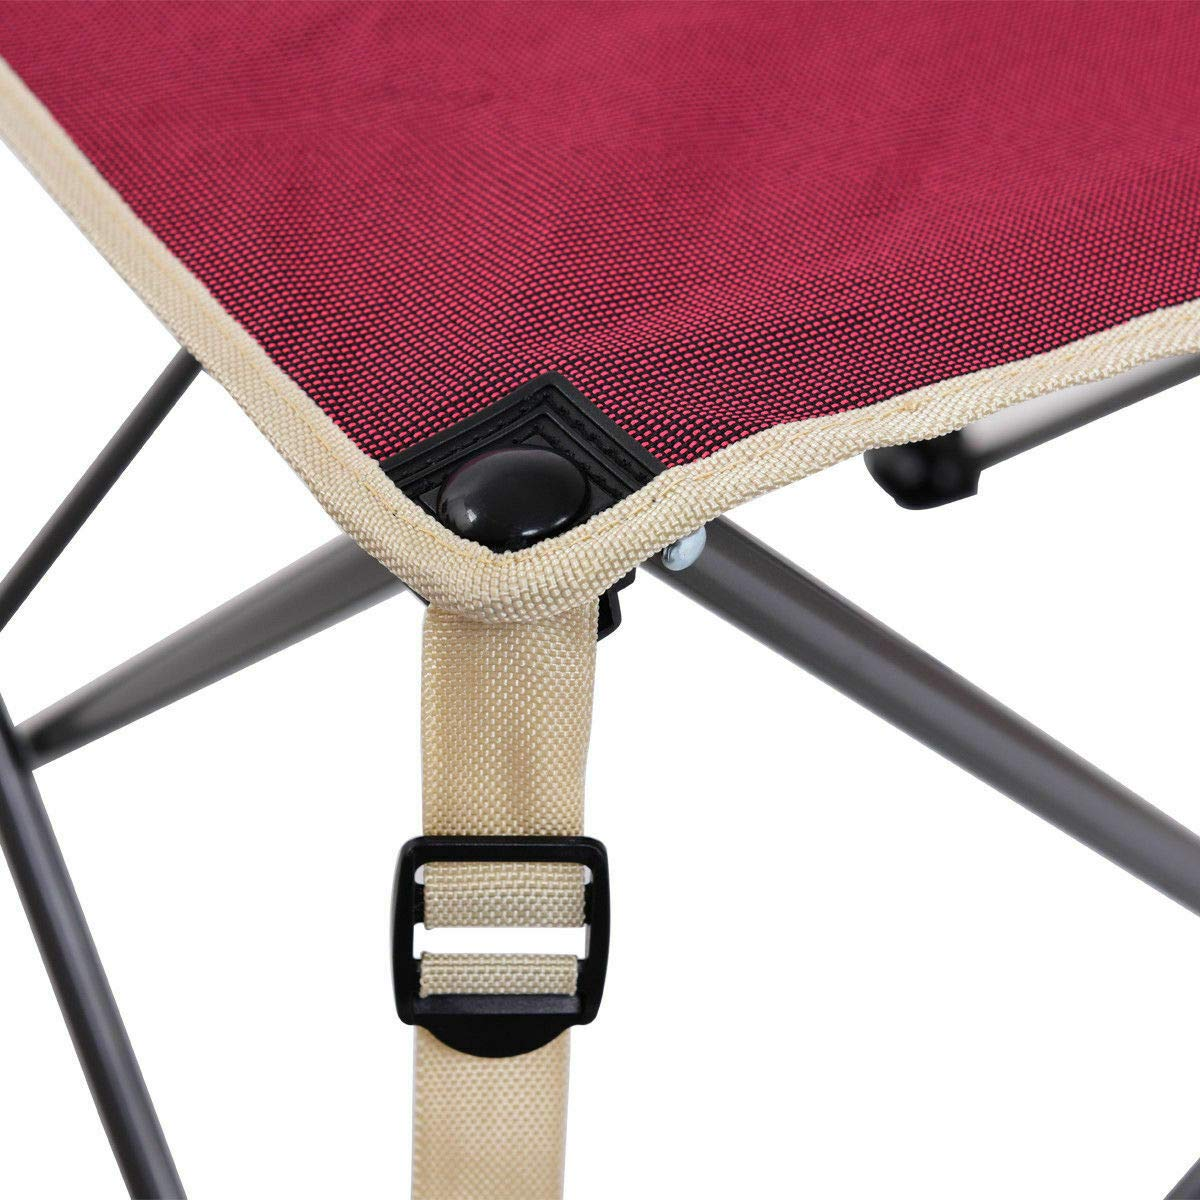 ANA Store Vacations Cookout Party Curl Stand Metal Iron Stell Frame Red Oxford Fabric Portable Folding Table Chairs Set Inside Outside Camp Beach Picnic with Carrying Bag by ANA Store (Image #2)